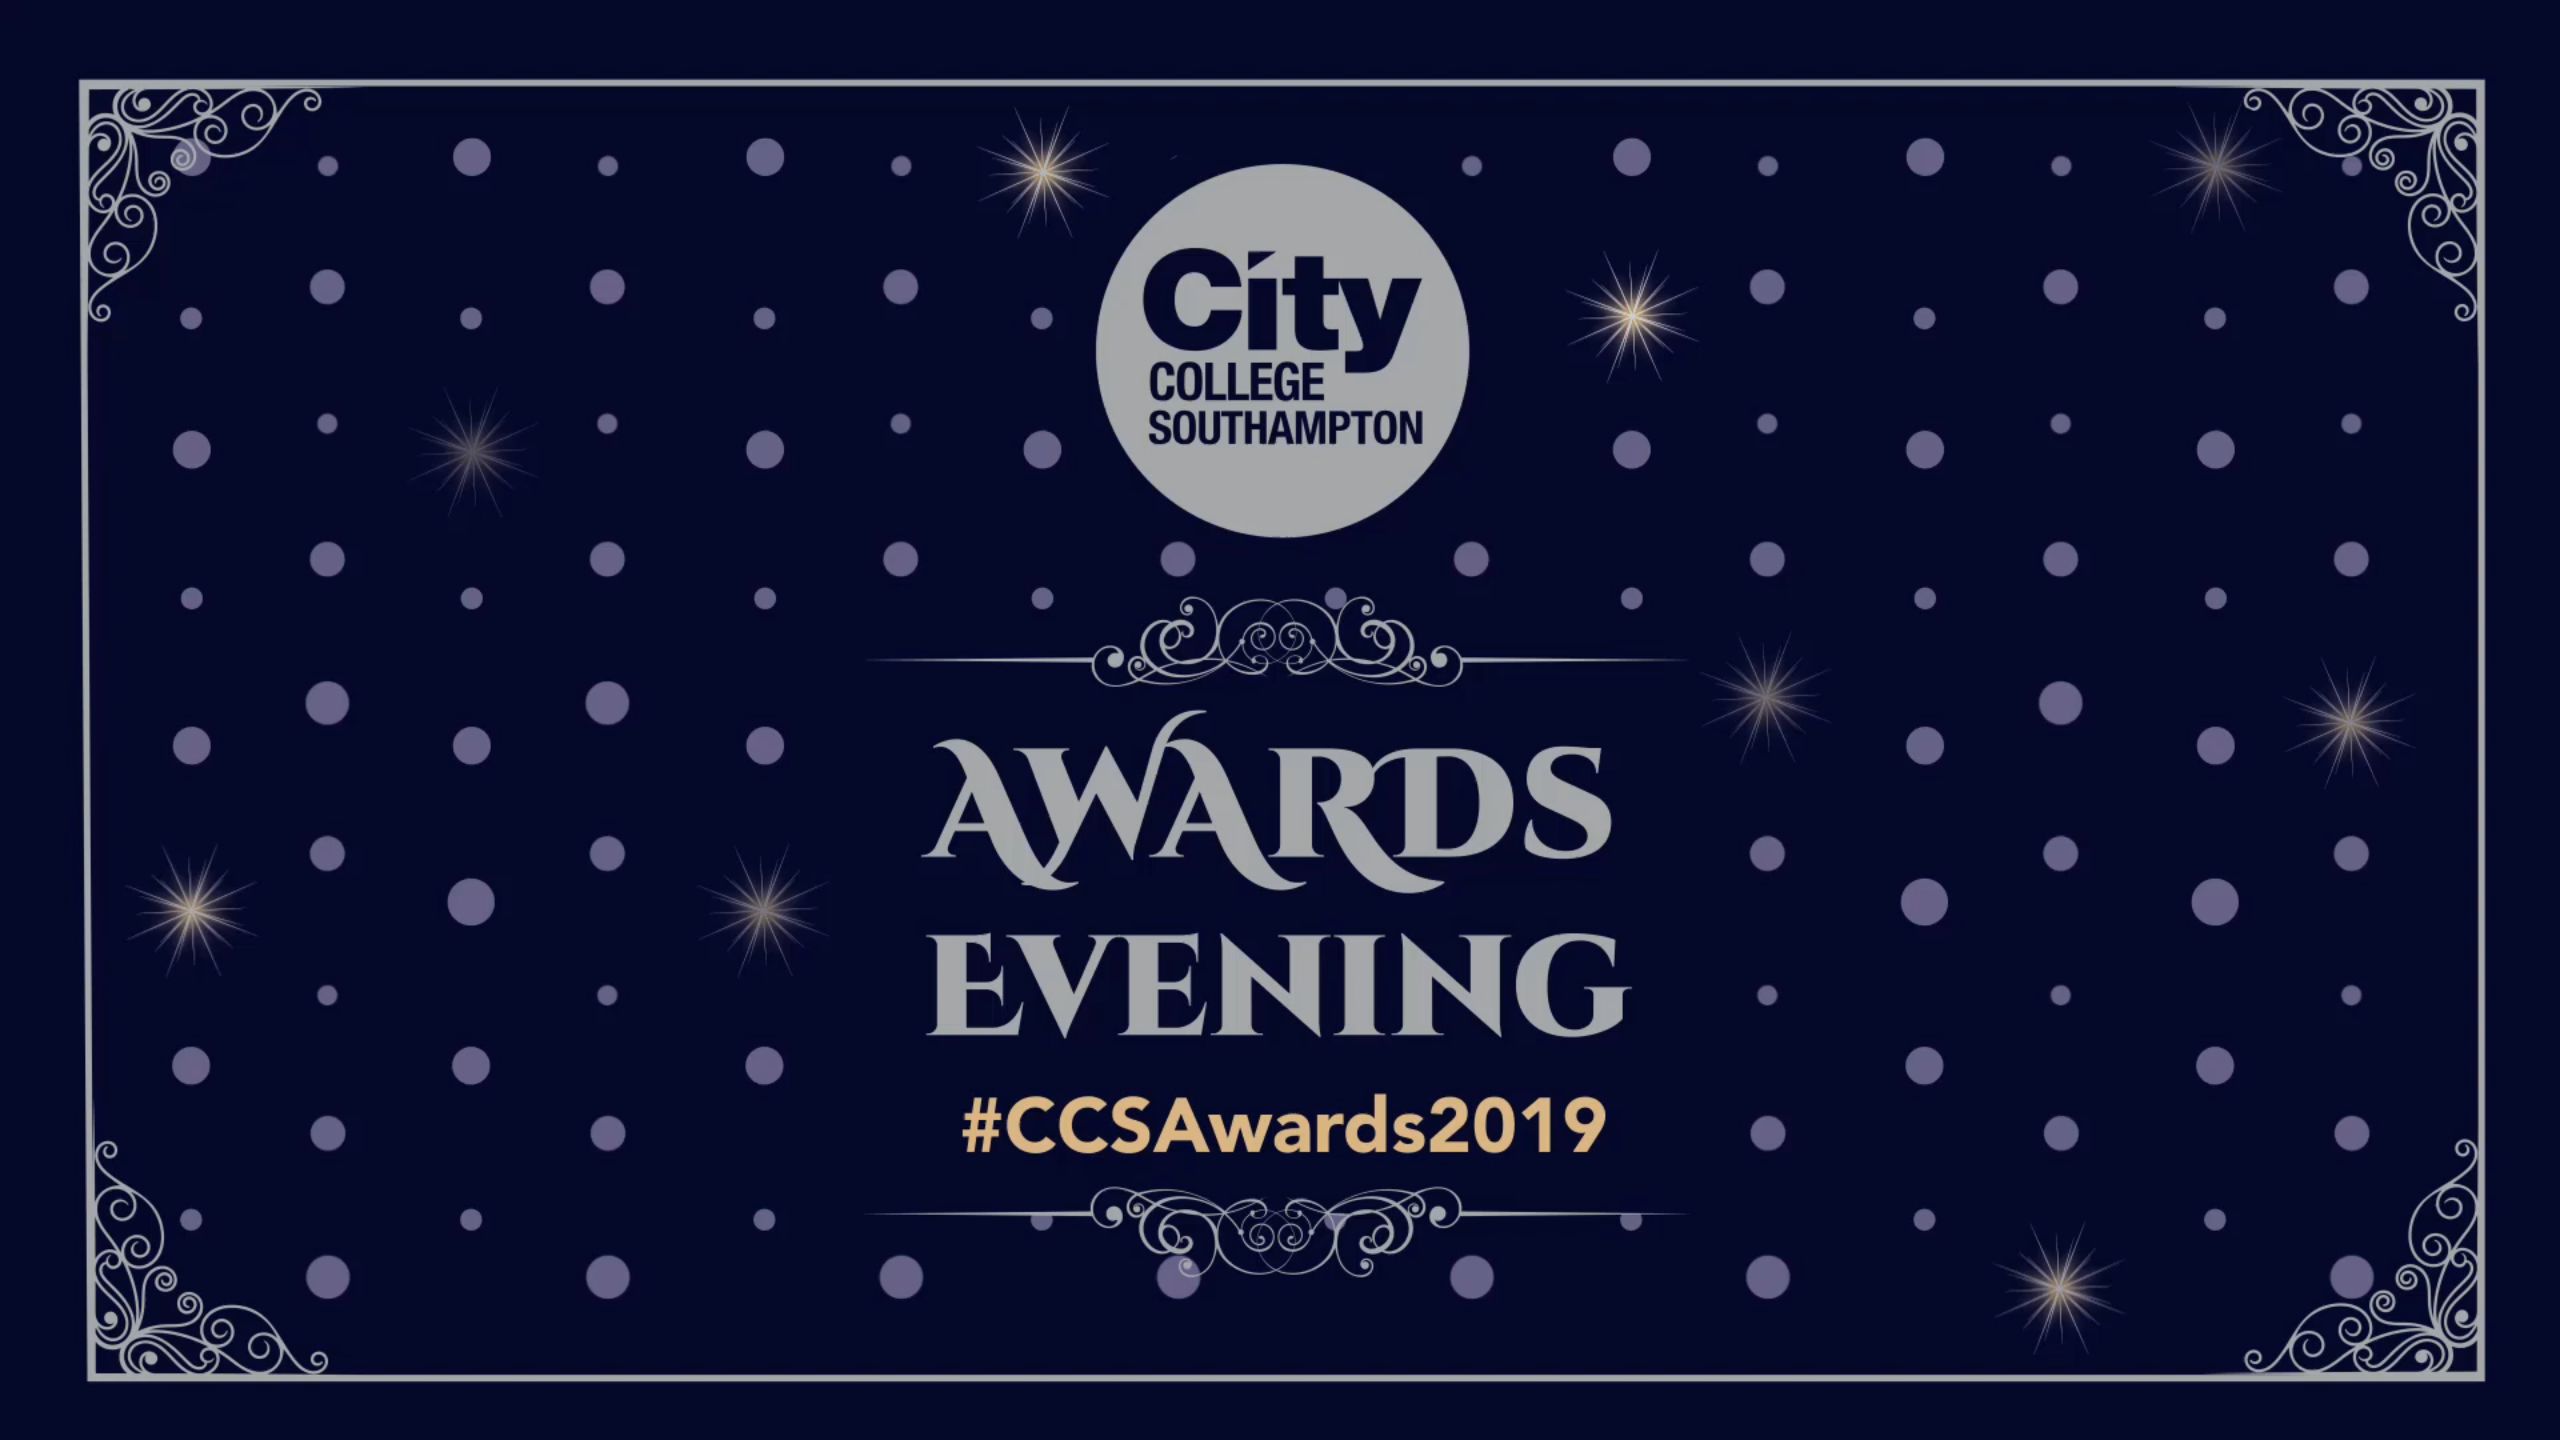 View the highlights of City College's Awards Evening 2019